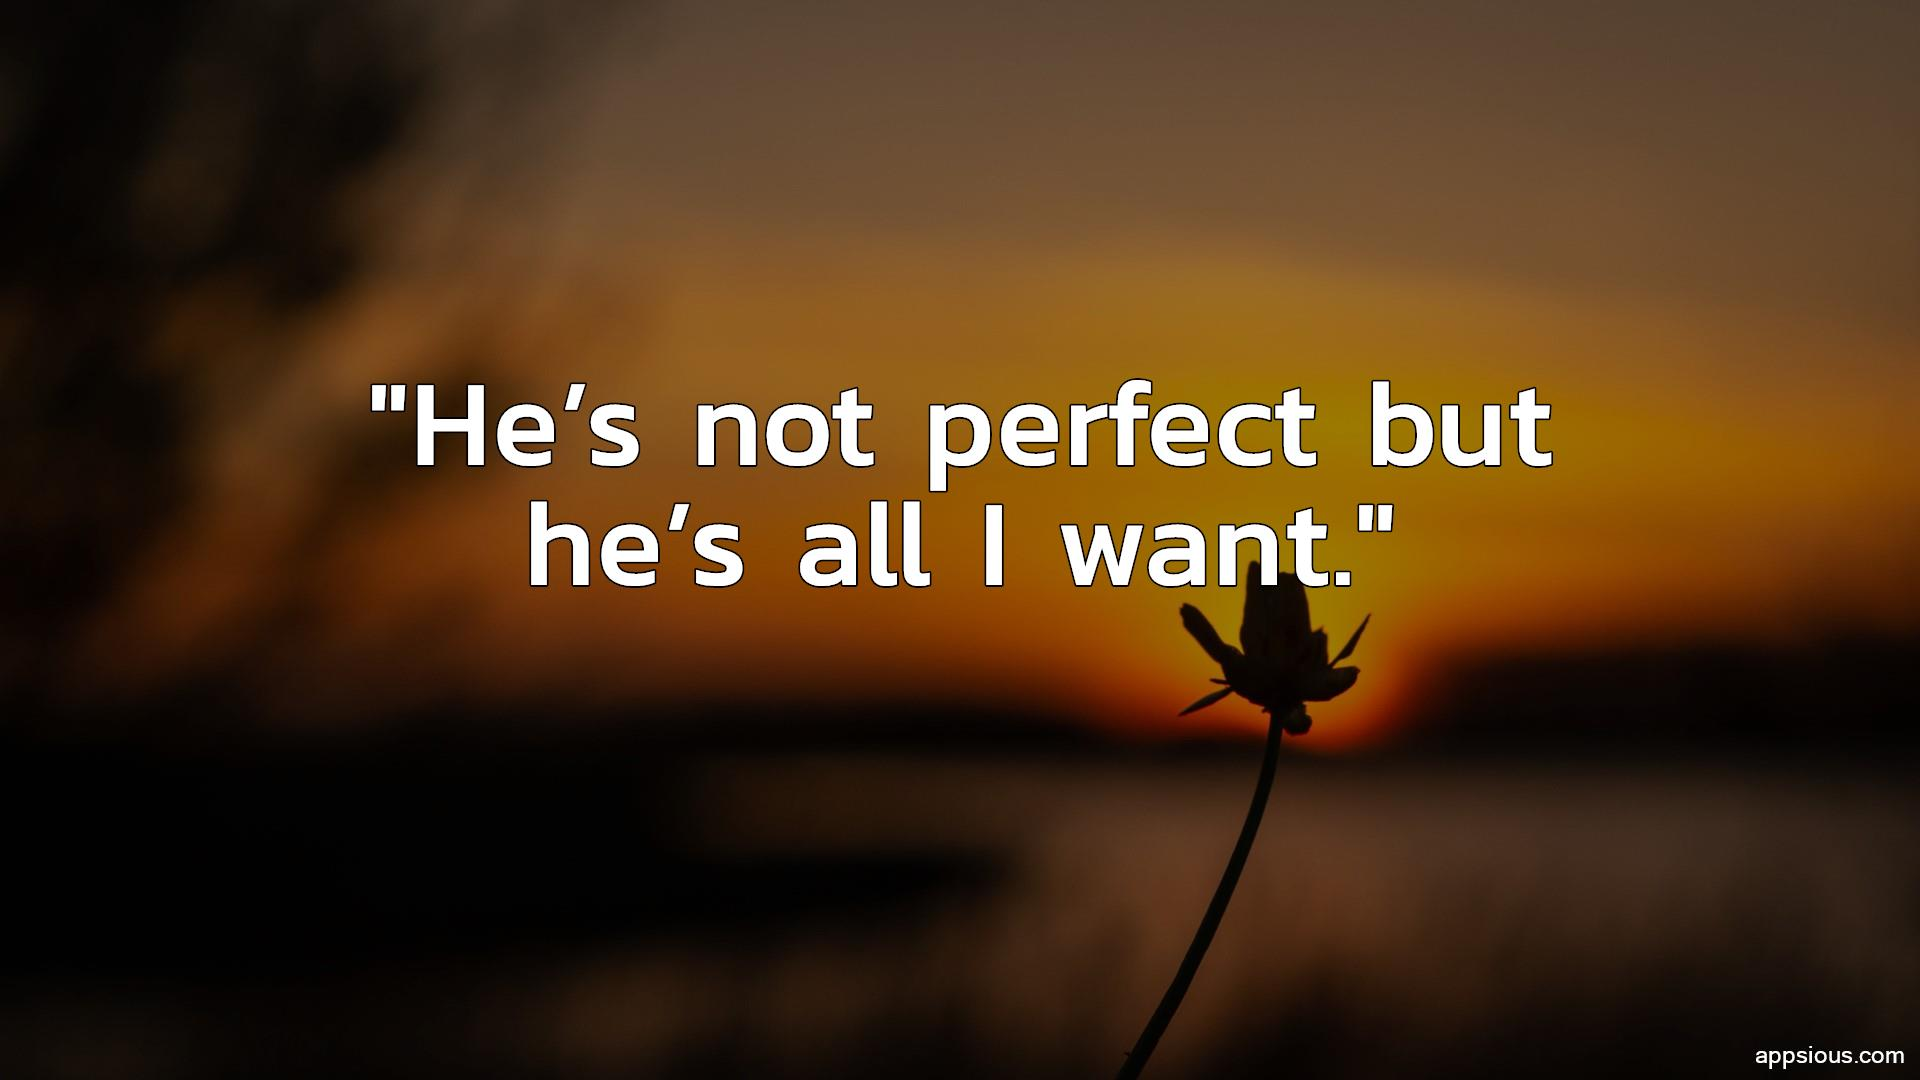 He's not perfect but he's all I want.